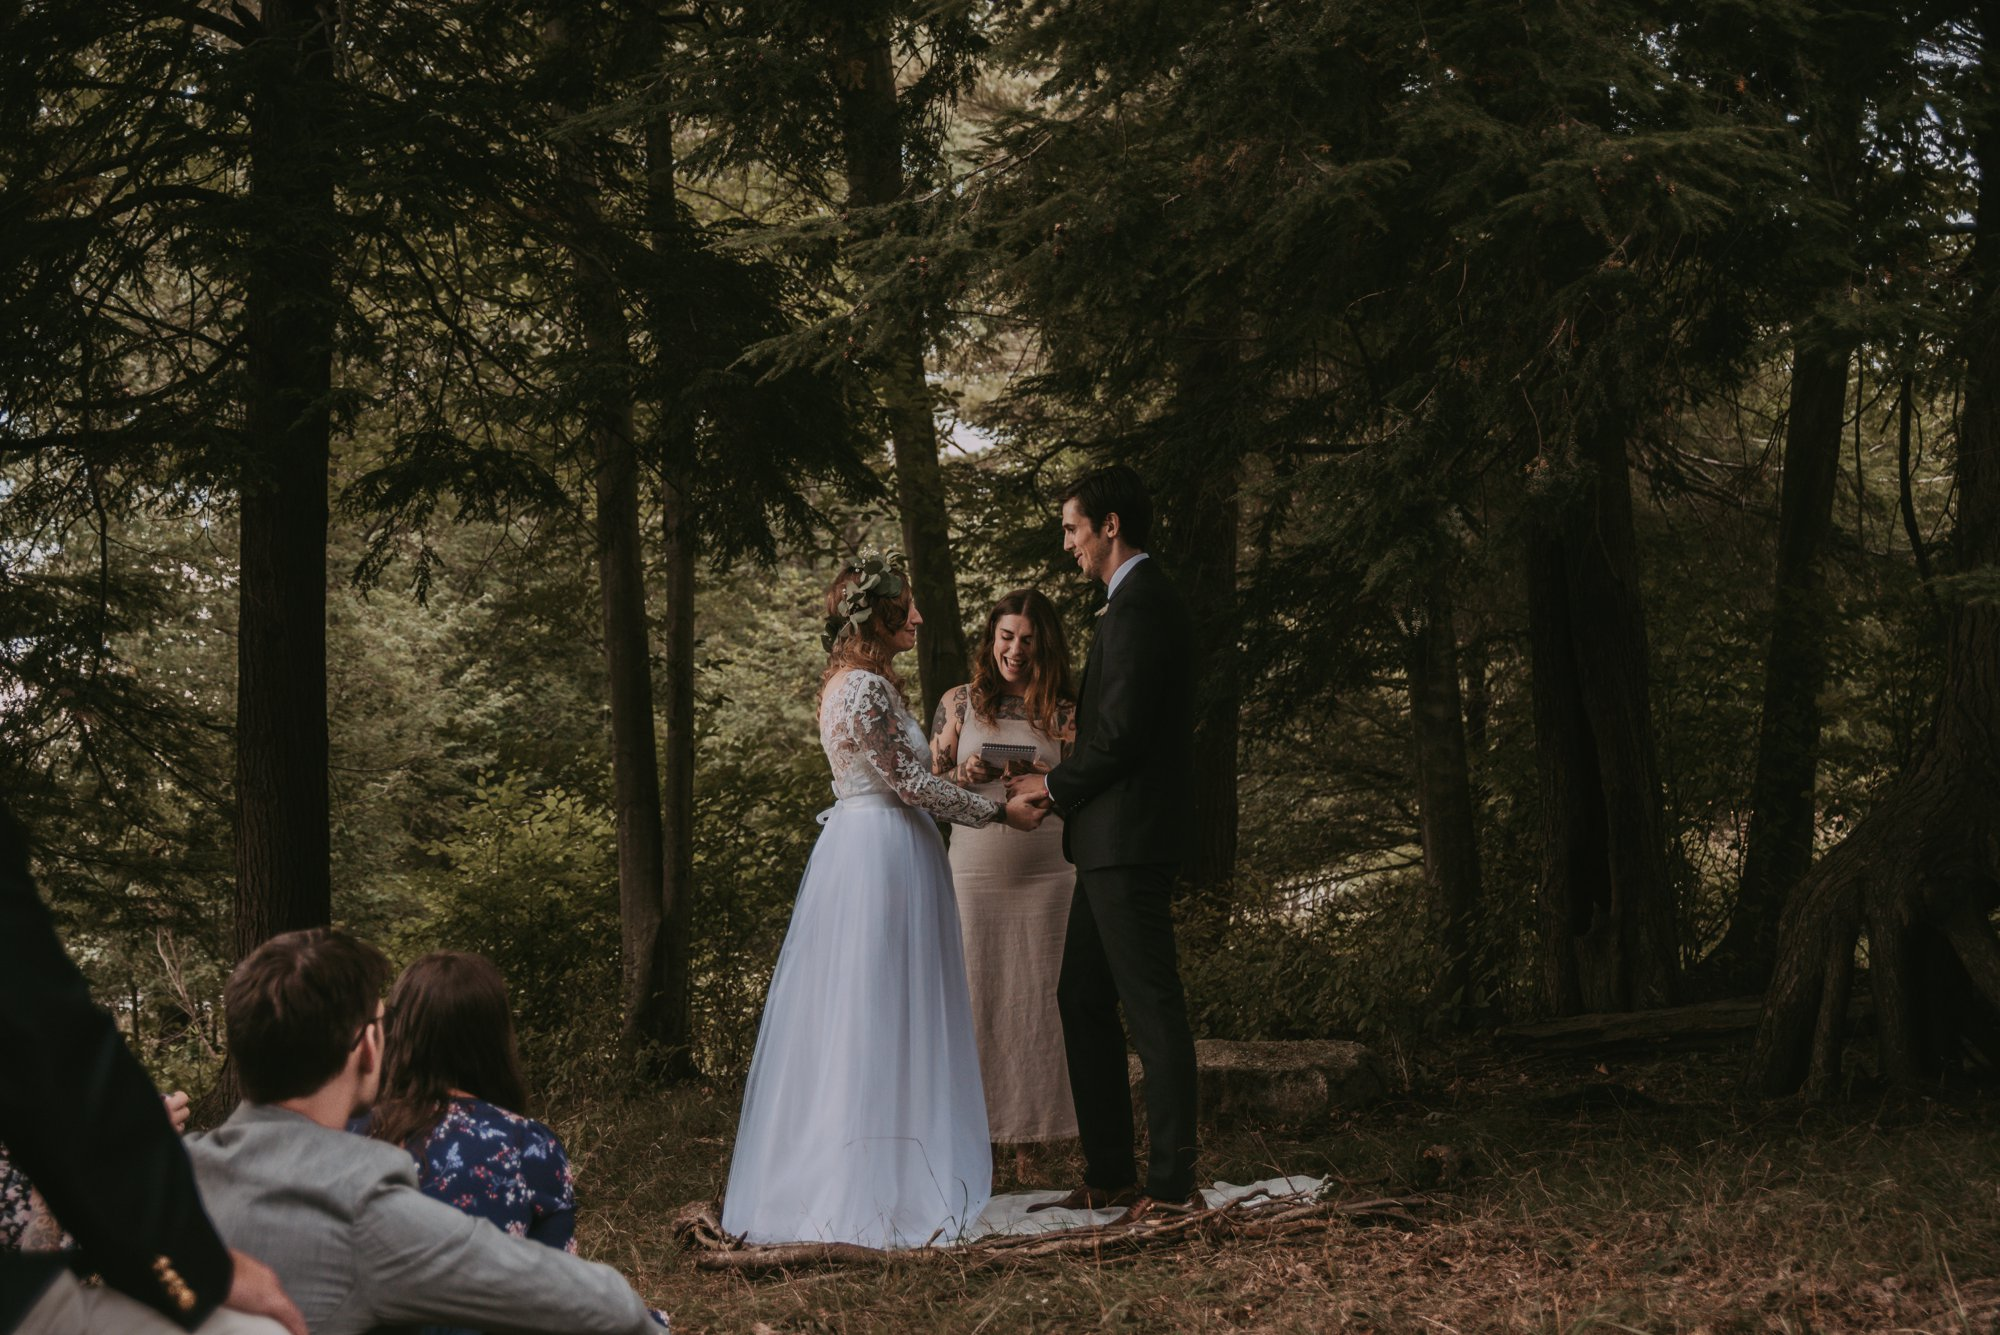 Rustic Intimate Vegan Forest Wedding with Handmade Dress. Vows